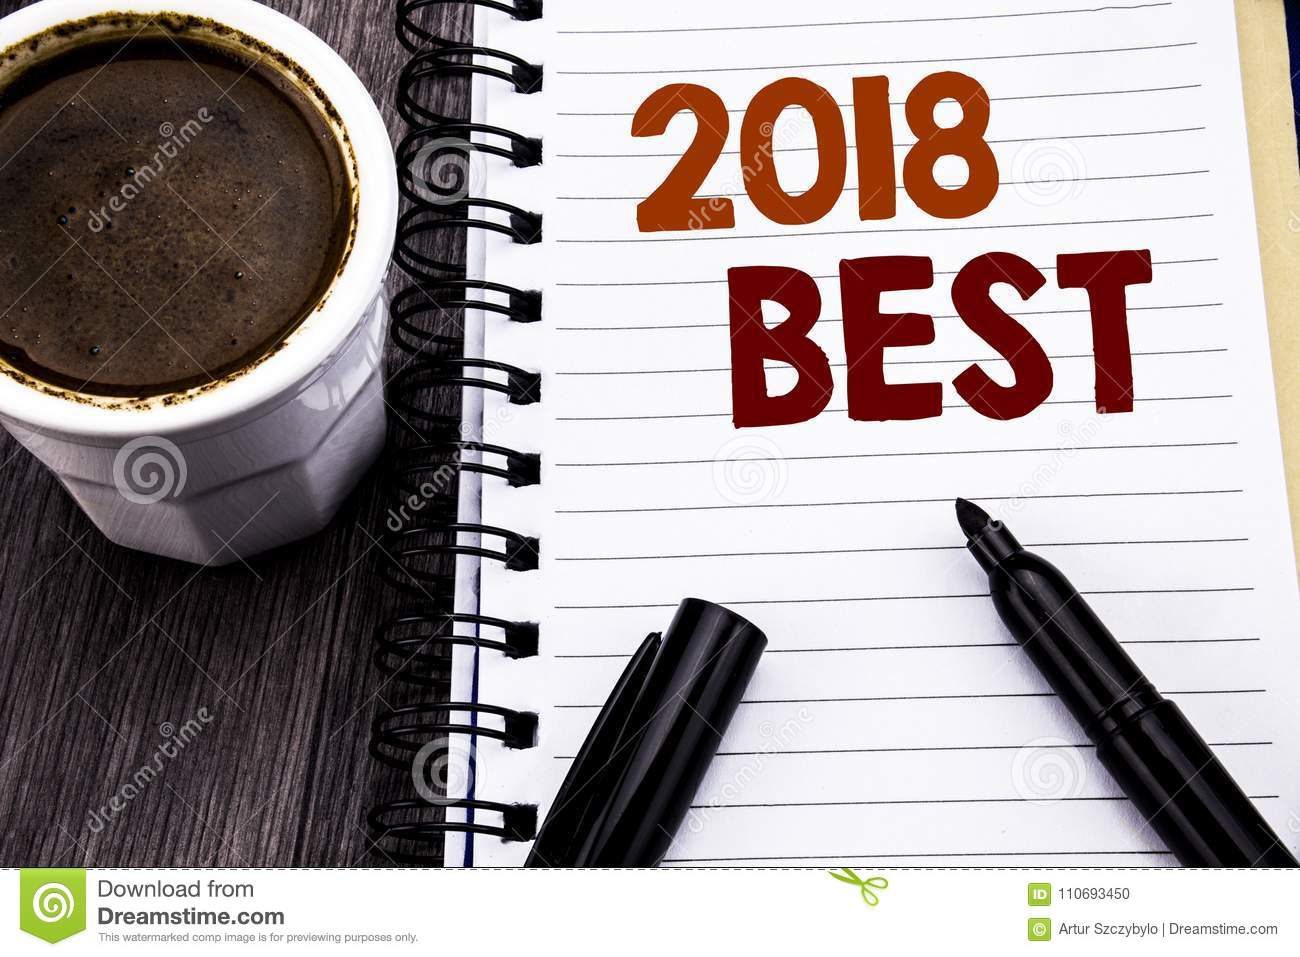 Best paper writing service 2018